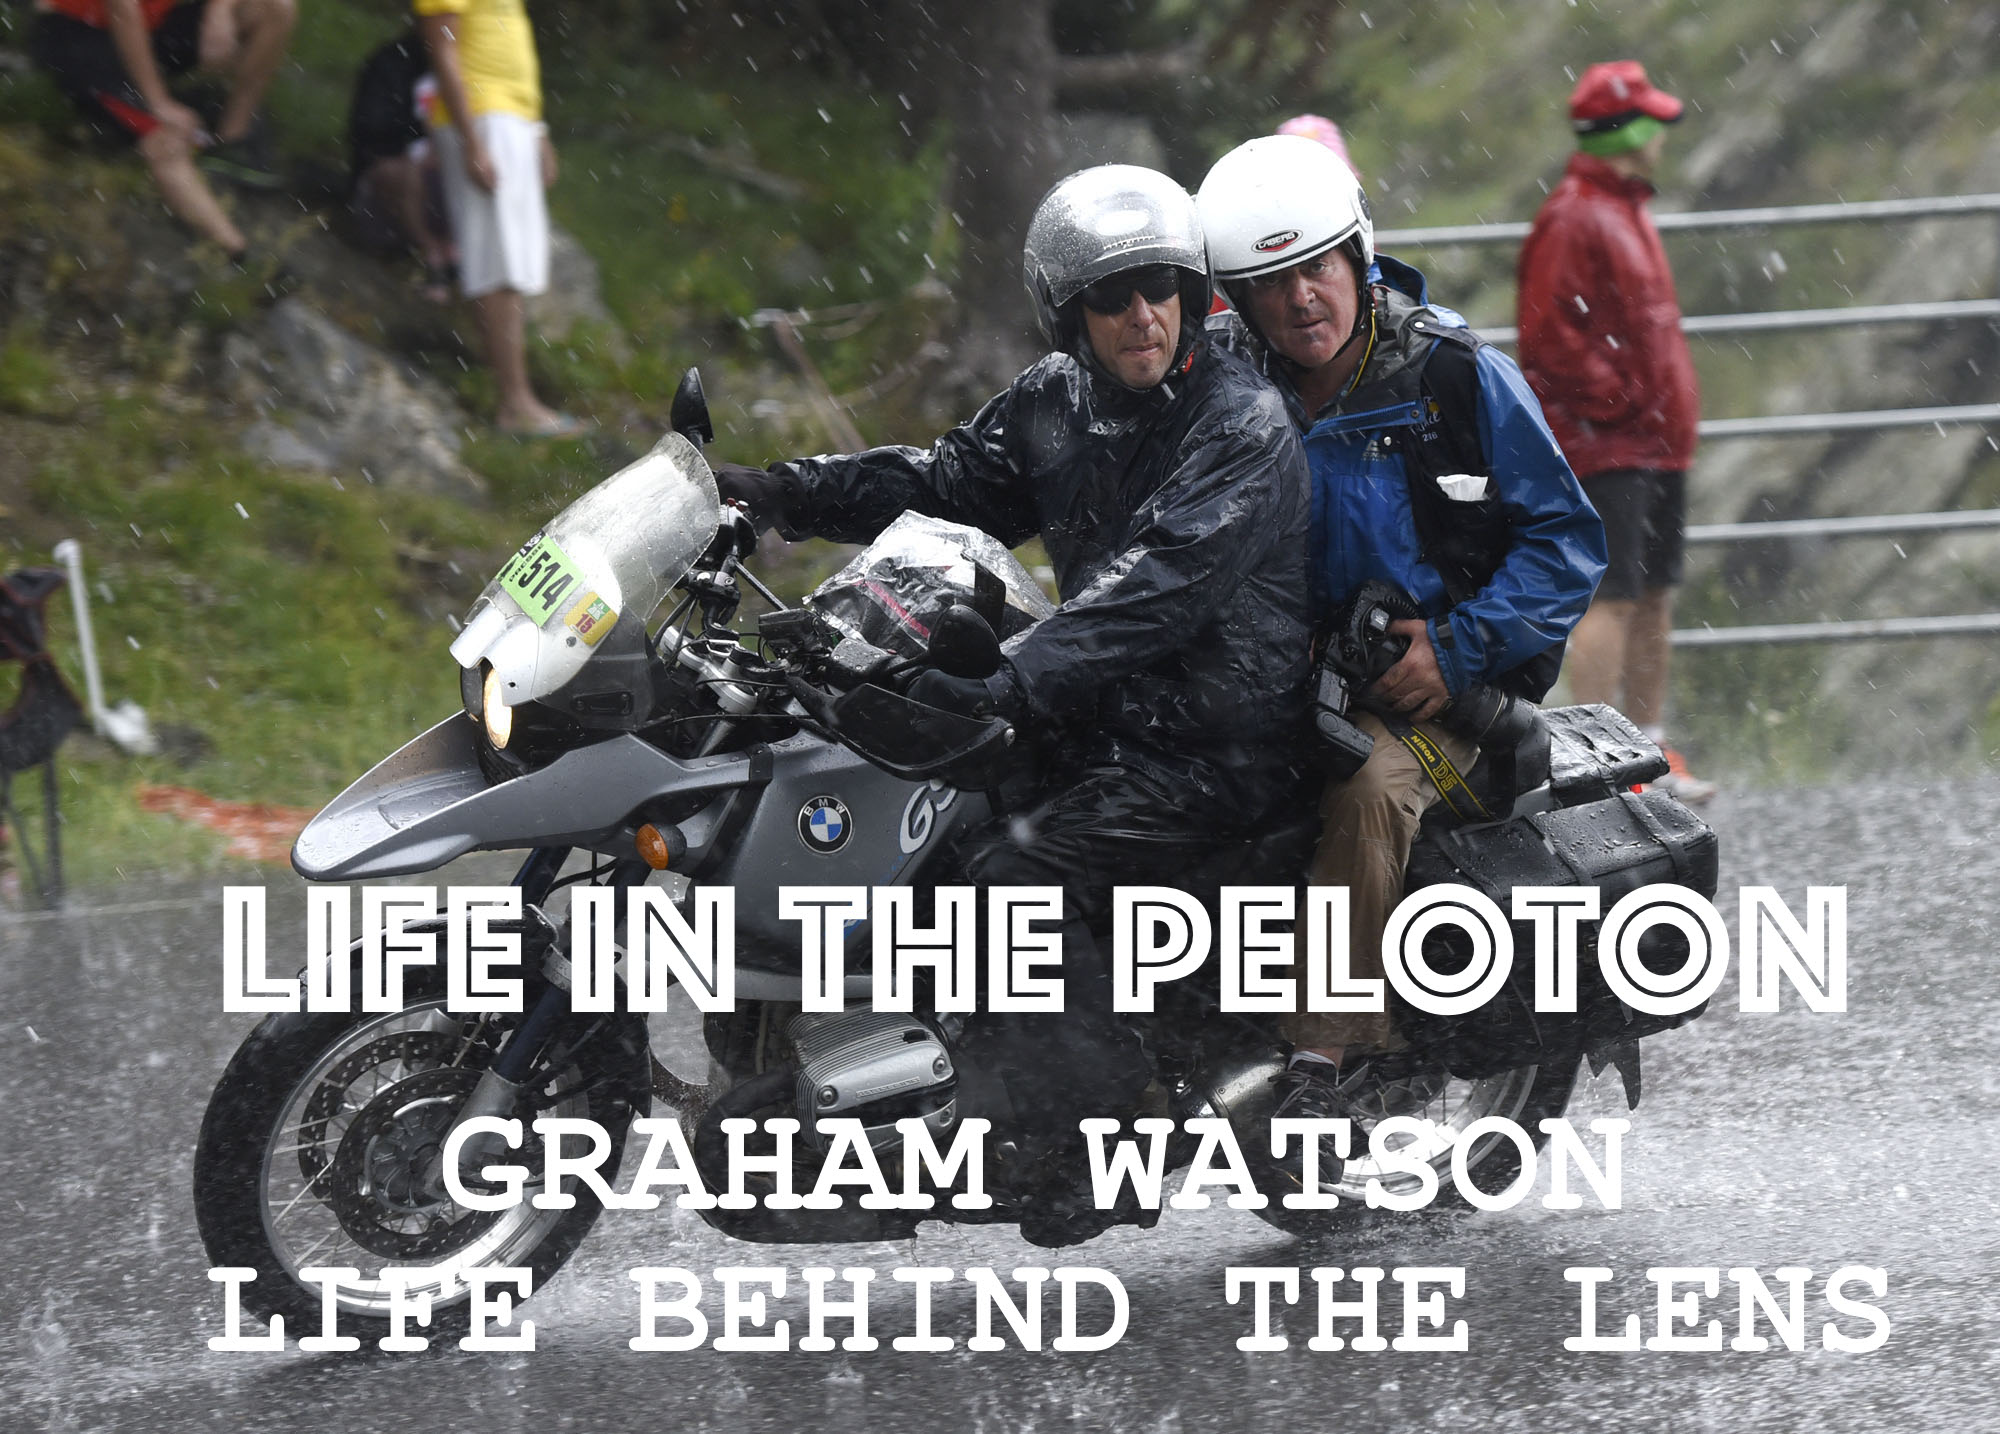 Graham Watson – Cycling from Behind the Lens